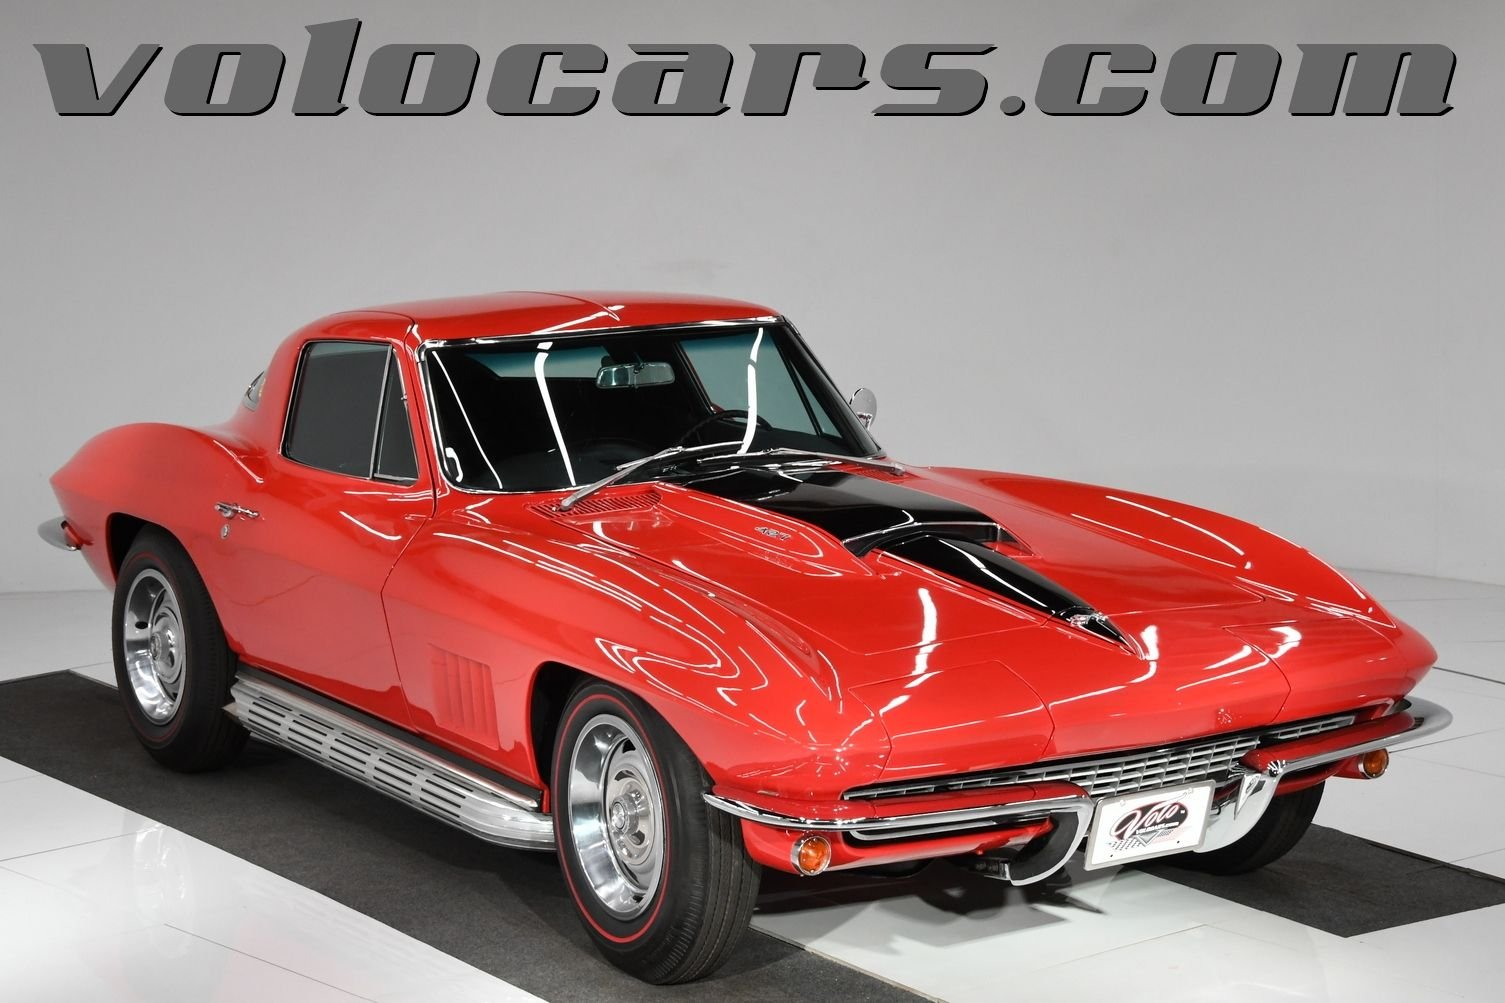 1967 chevrolet corvette l 88 tribute